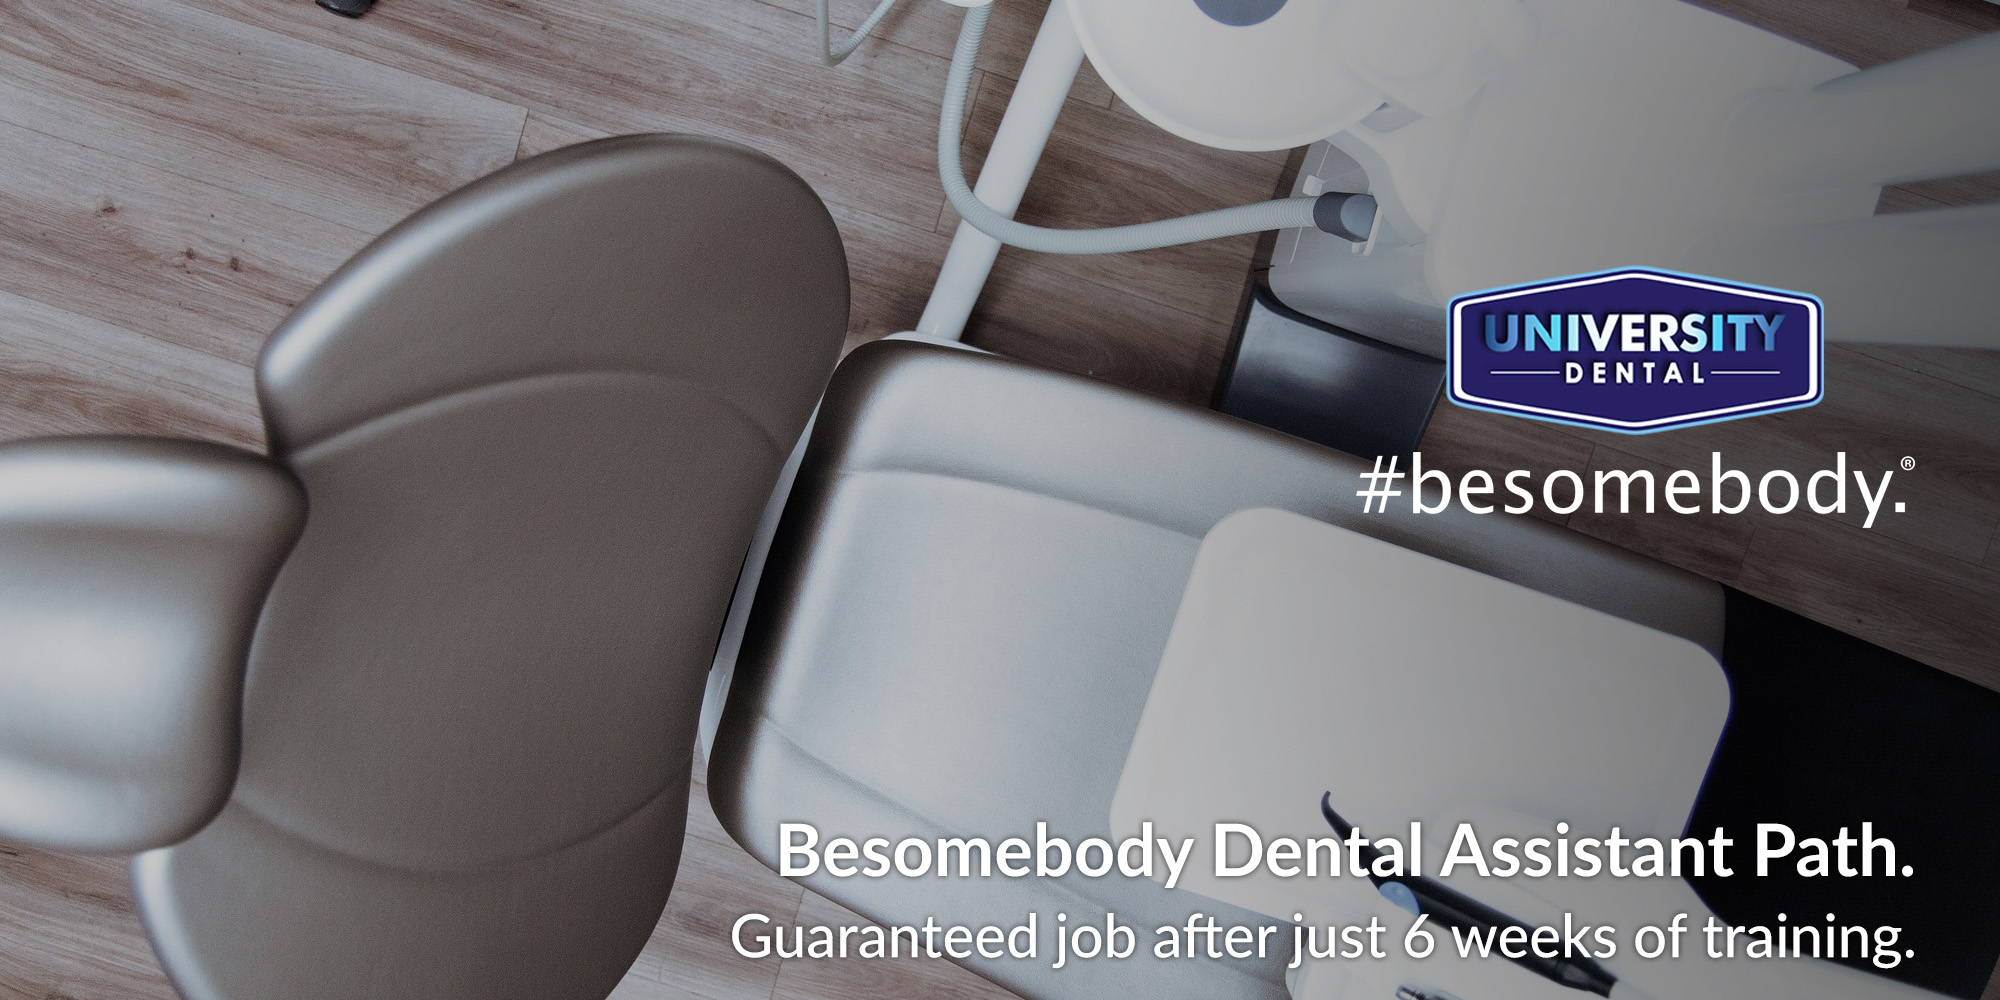 besomebody Healthcare Learning Path Dental